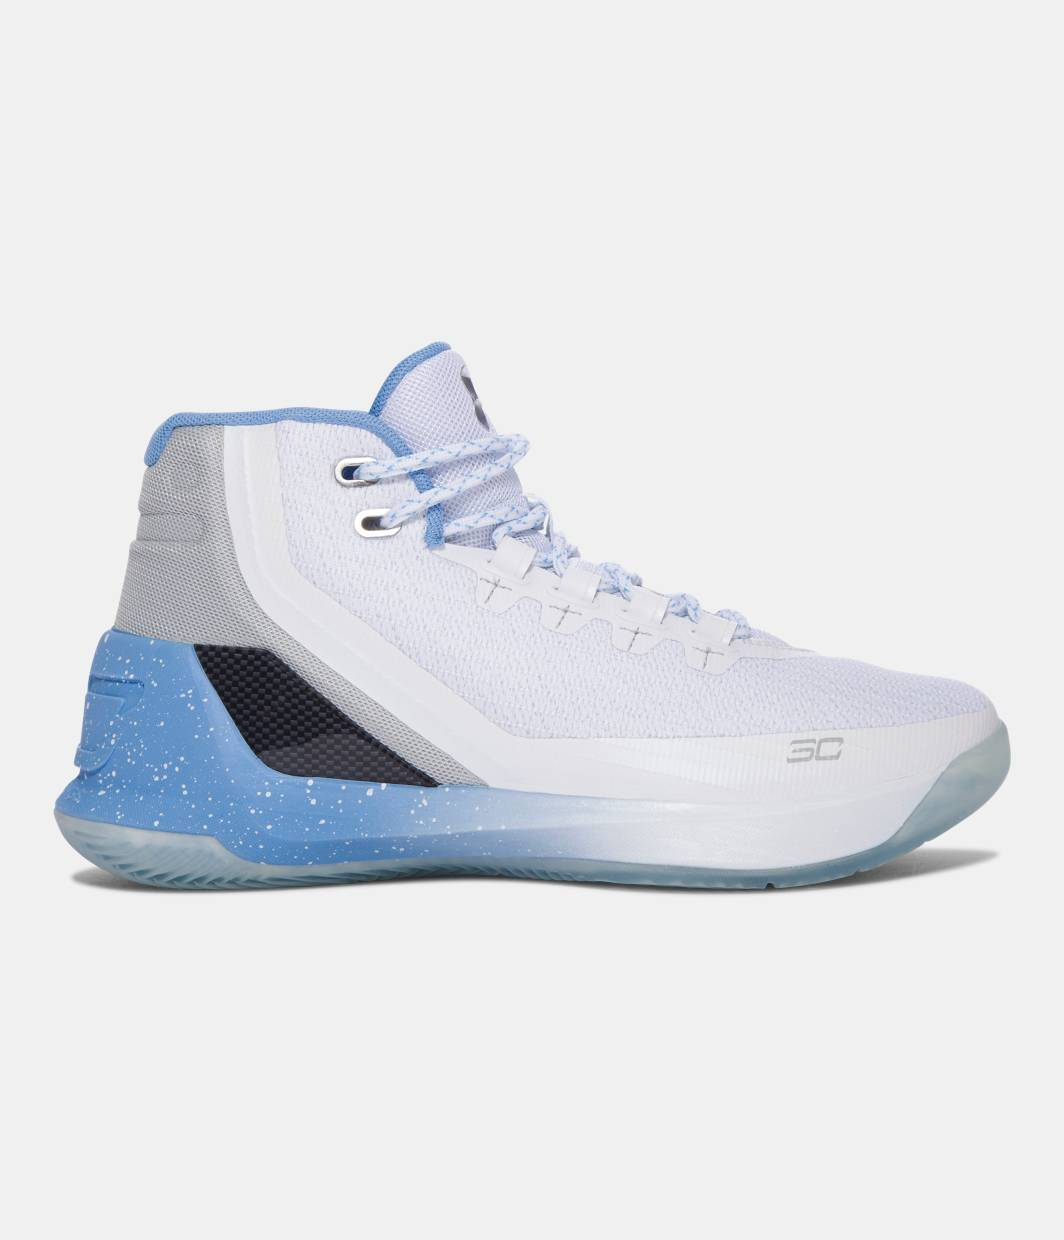 Under Armour School Shoes For Kids